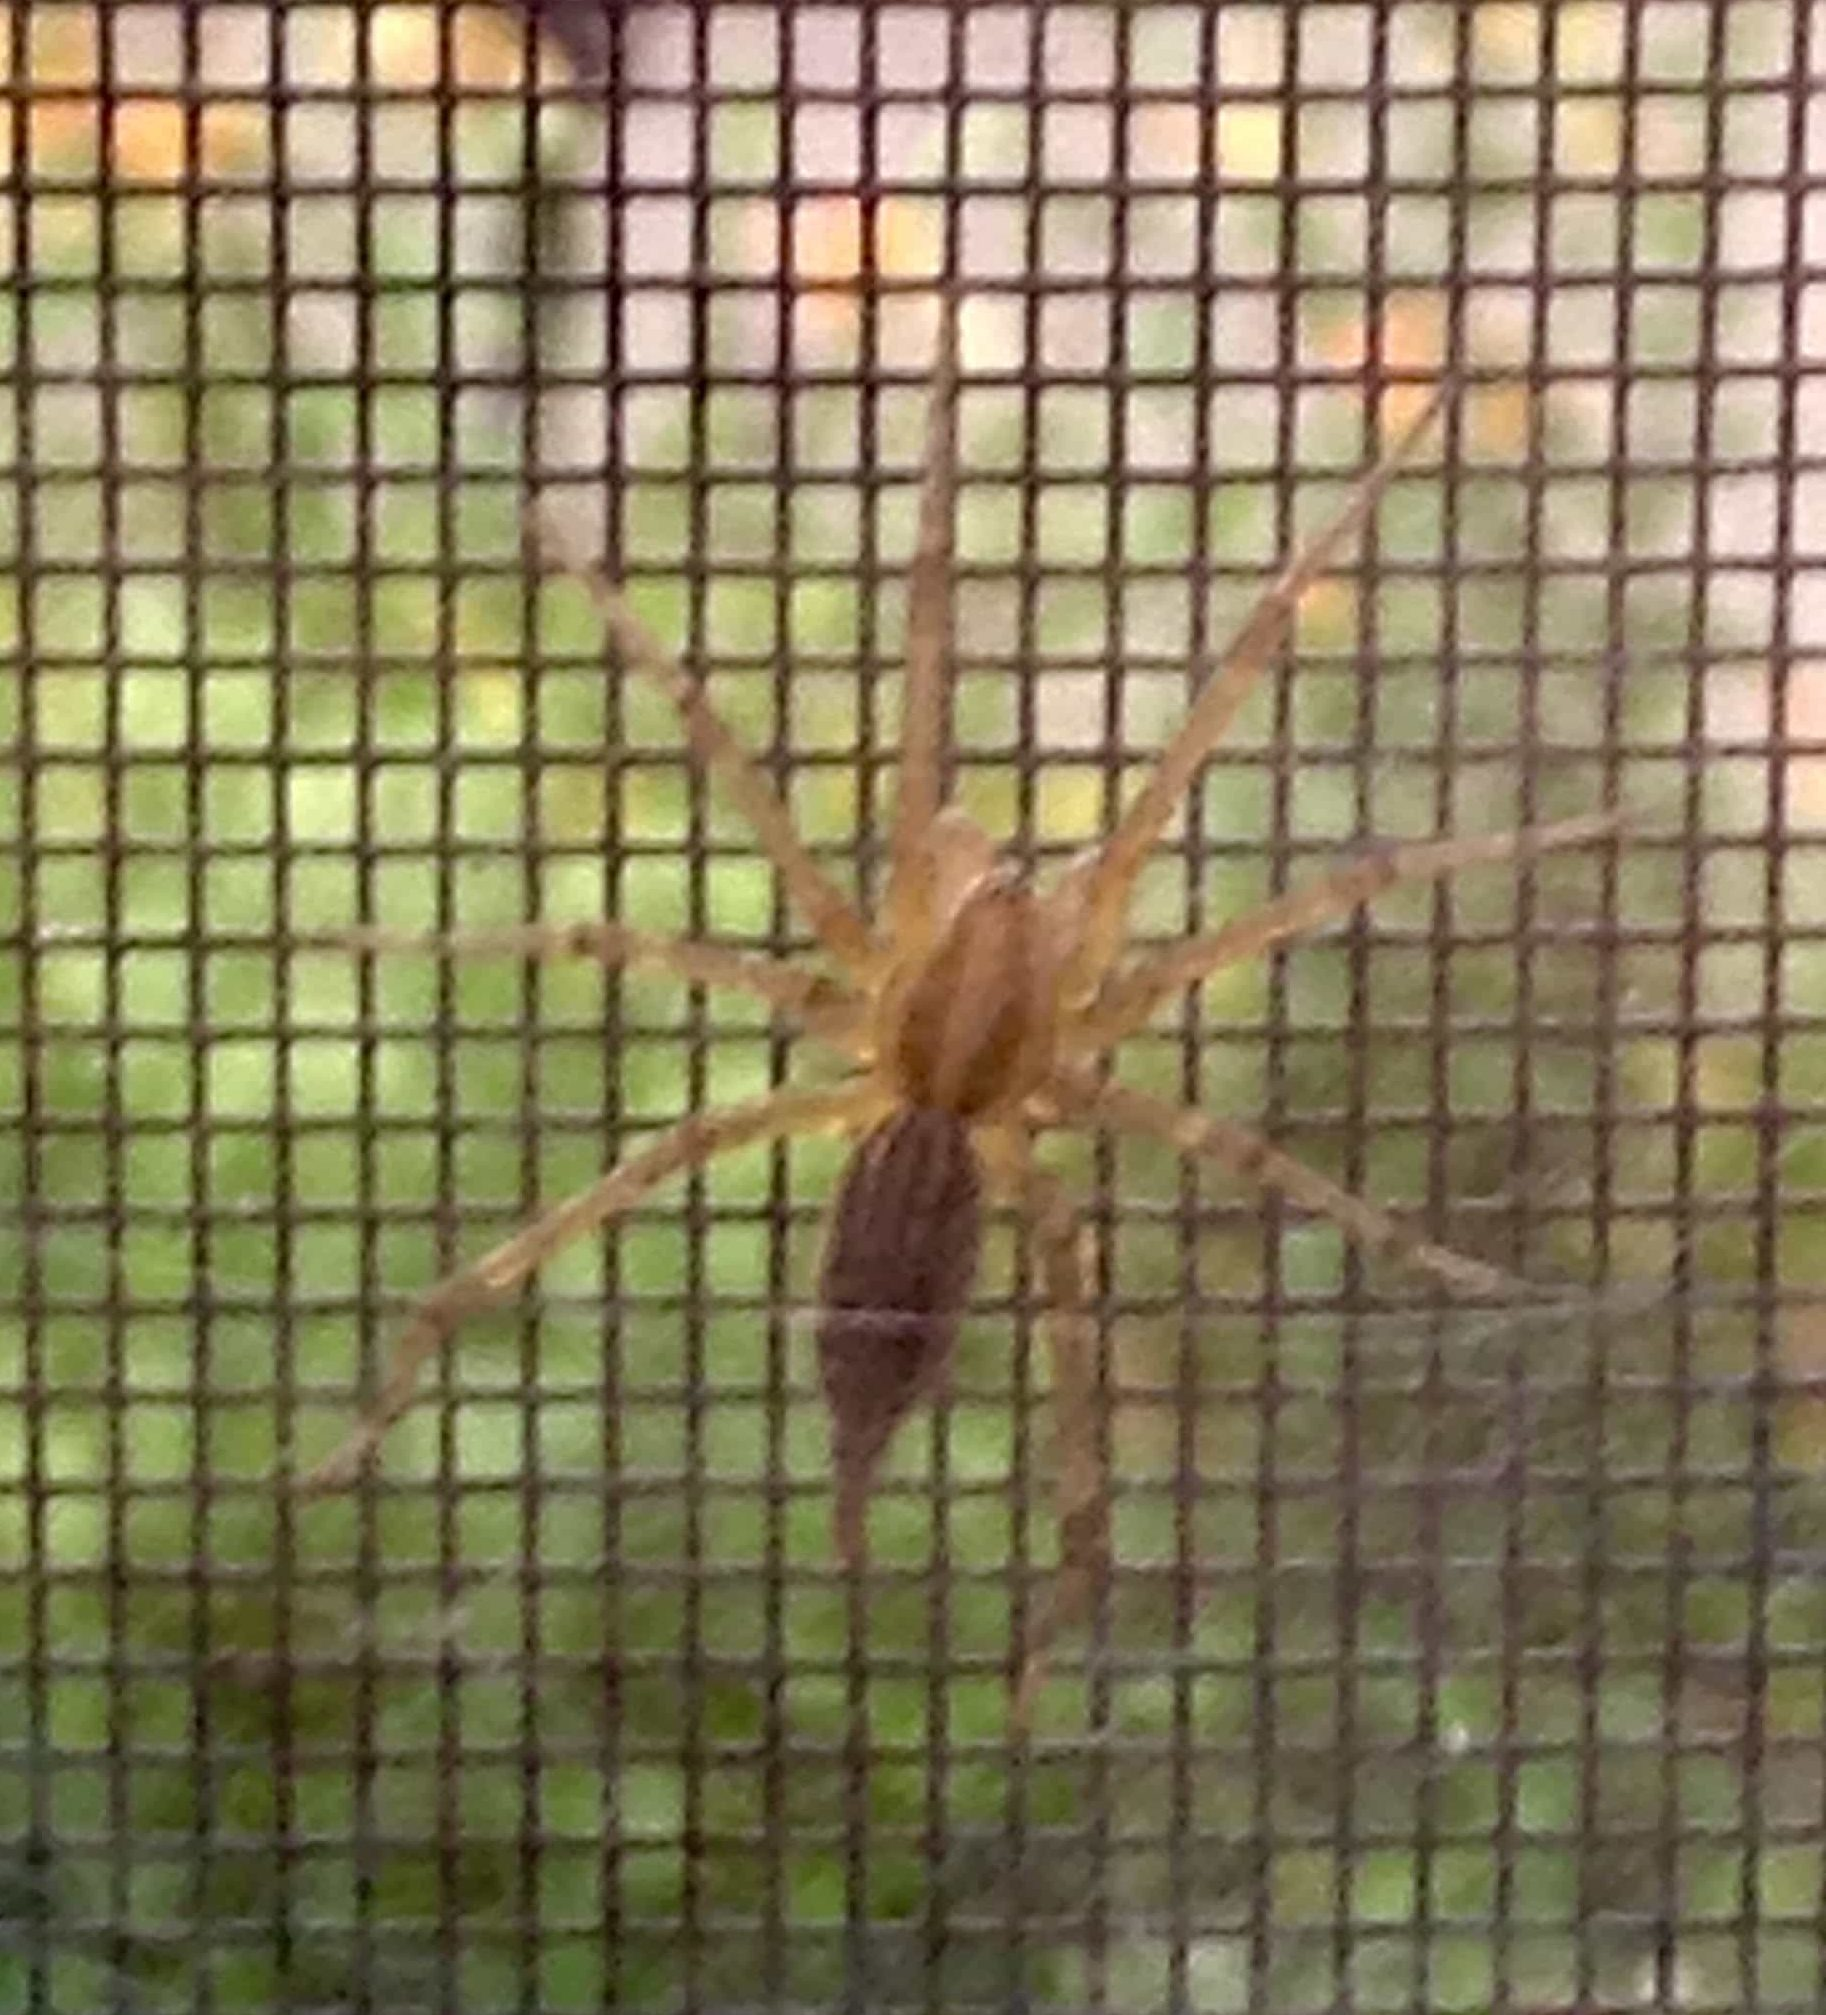 Picture of Agelenopsis (Grass Spiders) - Male - Dorsal